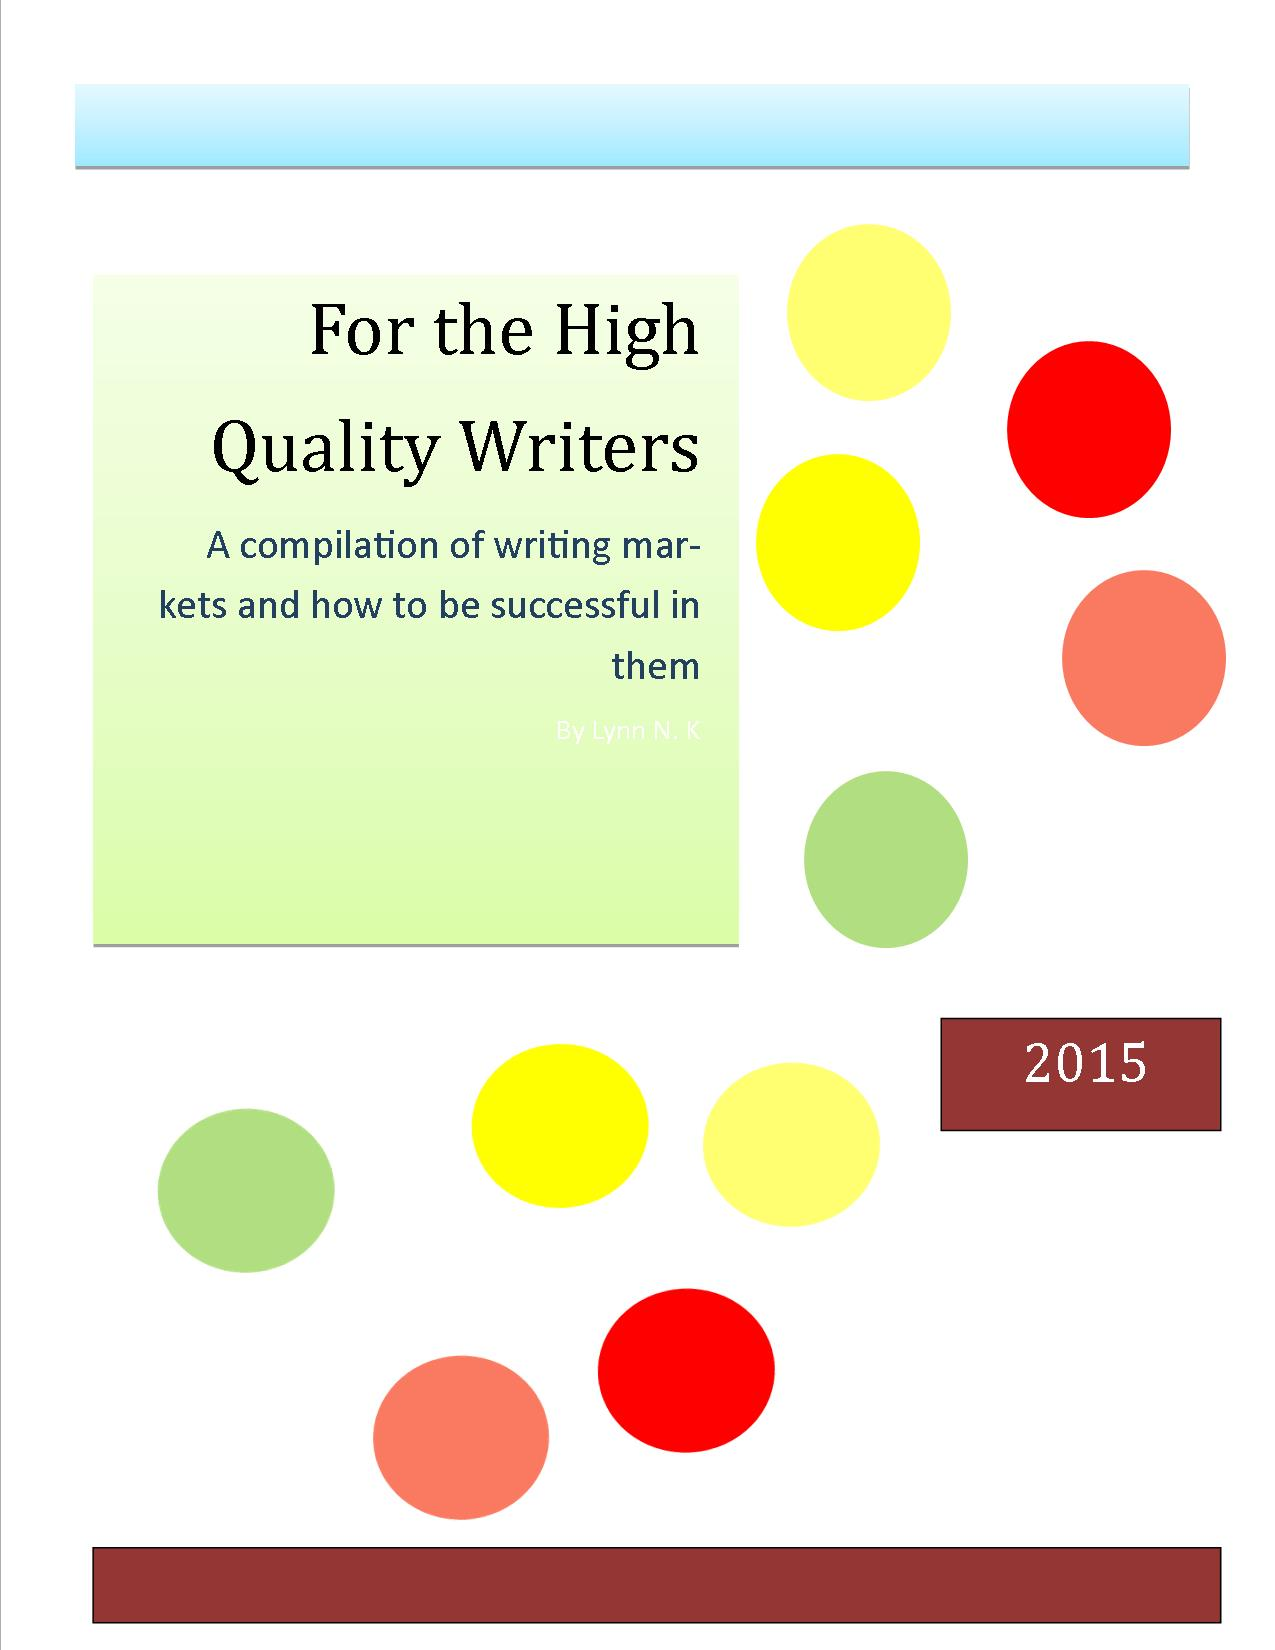 For the High Quality Writers